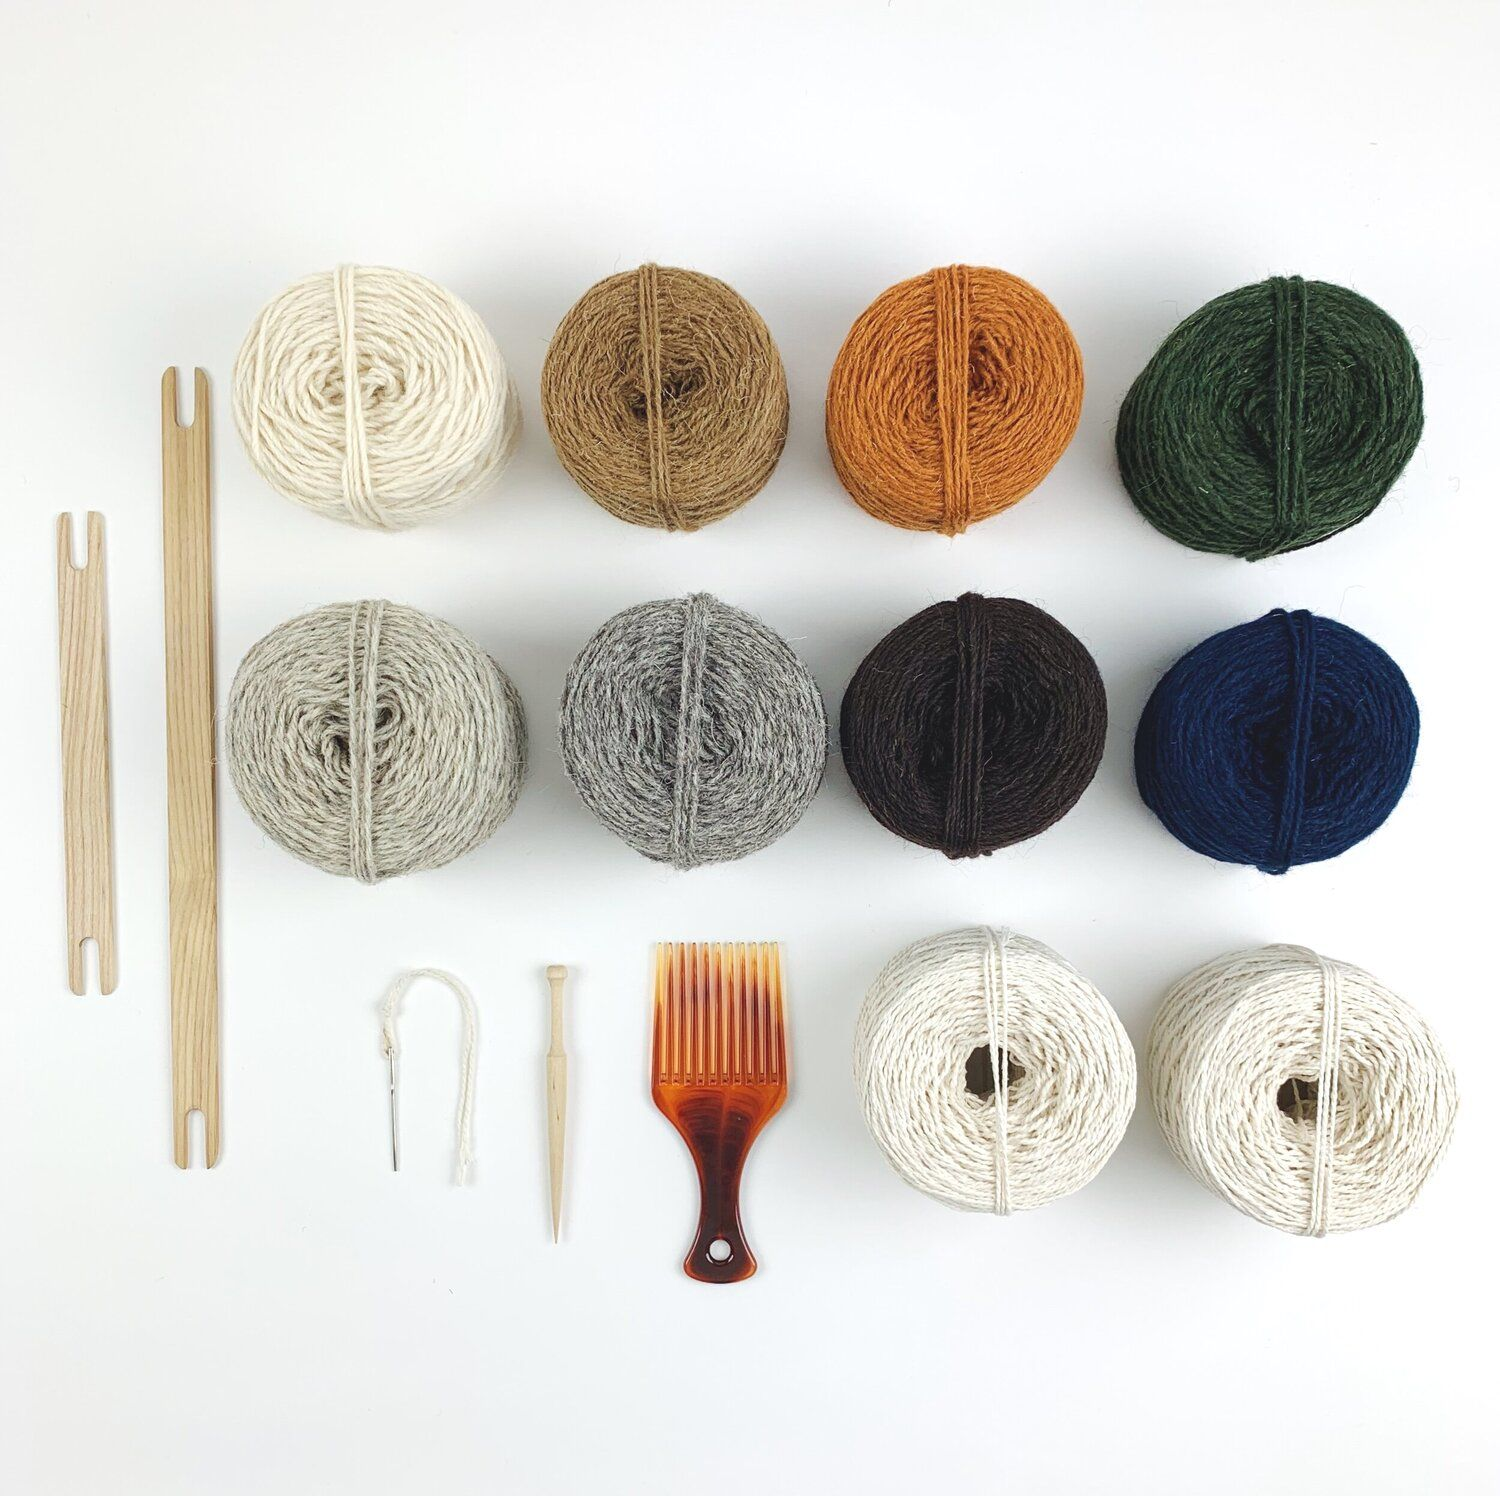 A kit to accompany my Rug Loom! It contains everything you need to get started on weaving your very own rug, including warp yarn, weaving tools and rug wool.  #handweaving #weavingloom #tapestryweaving #onmyloom #handwoven #britishcraft #slowmade #christabelbalfour #beautifulinteriors #wovenwallhanging #loomweaving #geometrictapestry #geometric #wovenart #fibreart #fibreartist #weaving #weavingloom #rugweaving